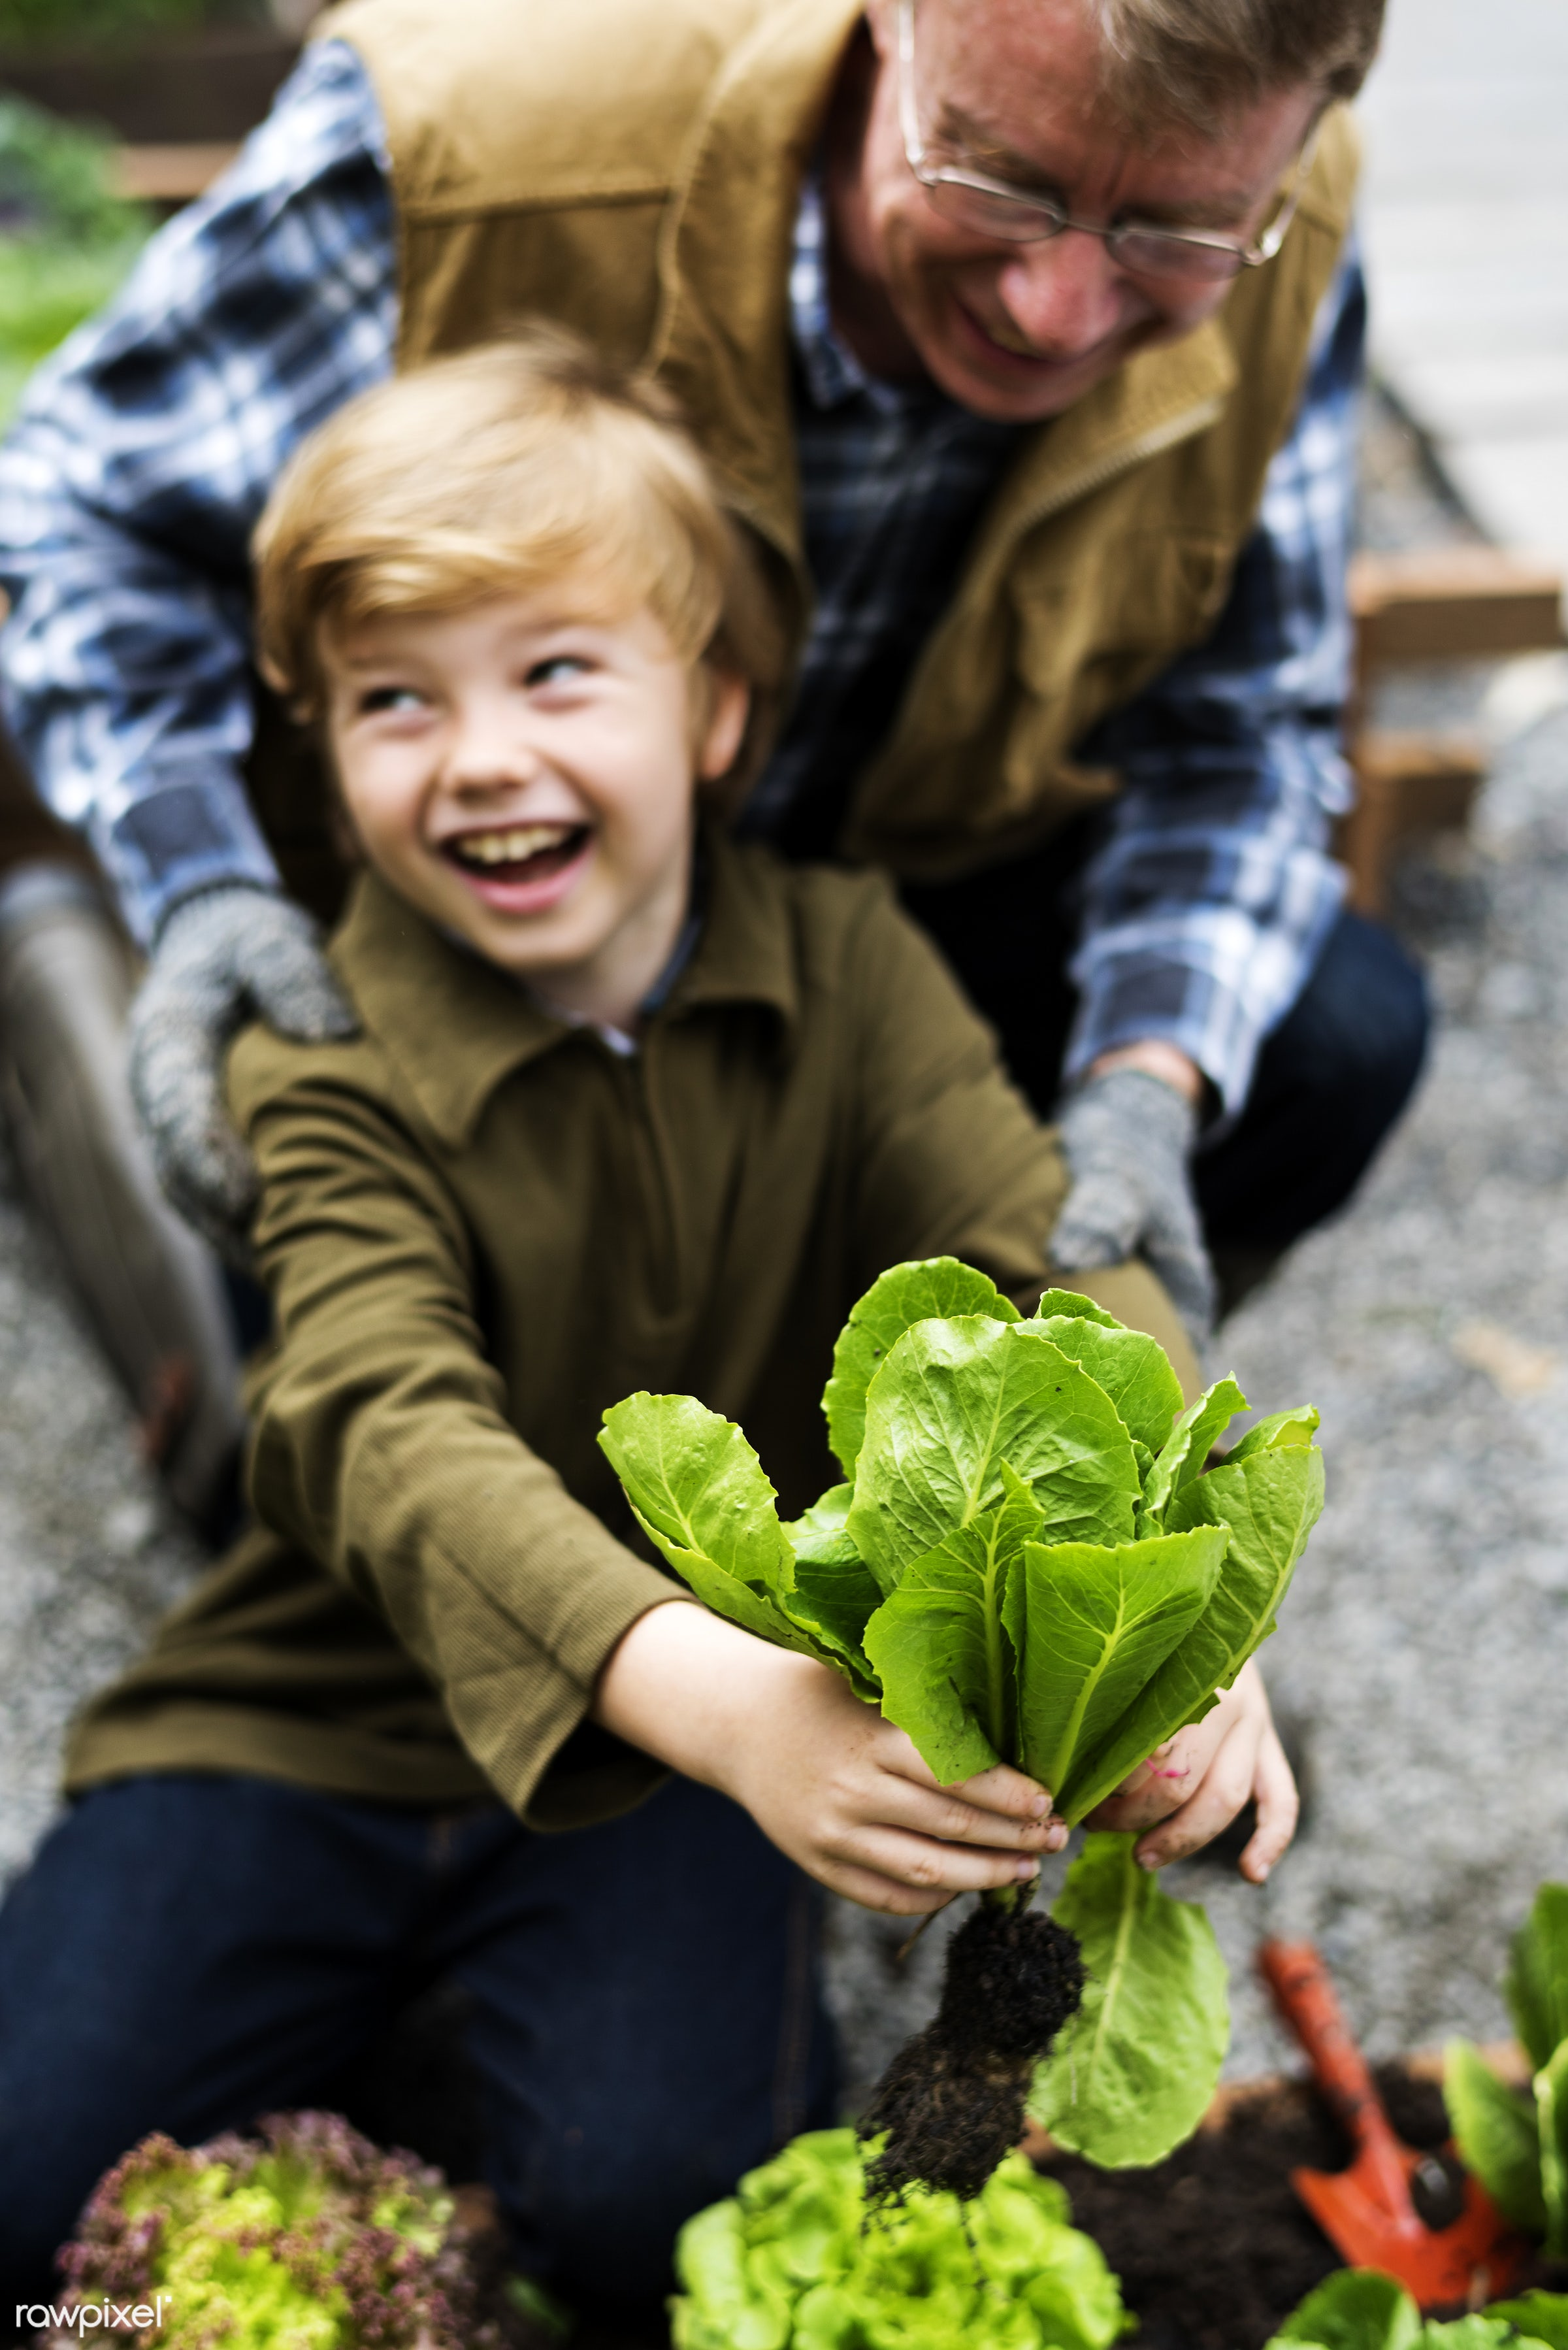 salad, person, pull, grandfather, leaves, people, kid, grandchild, farmer, grandson, dirt, agriculture, planting, present,...